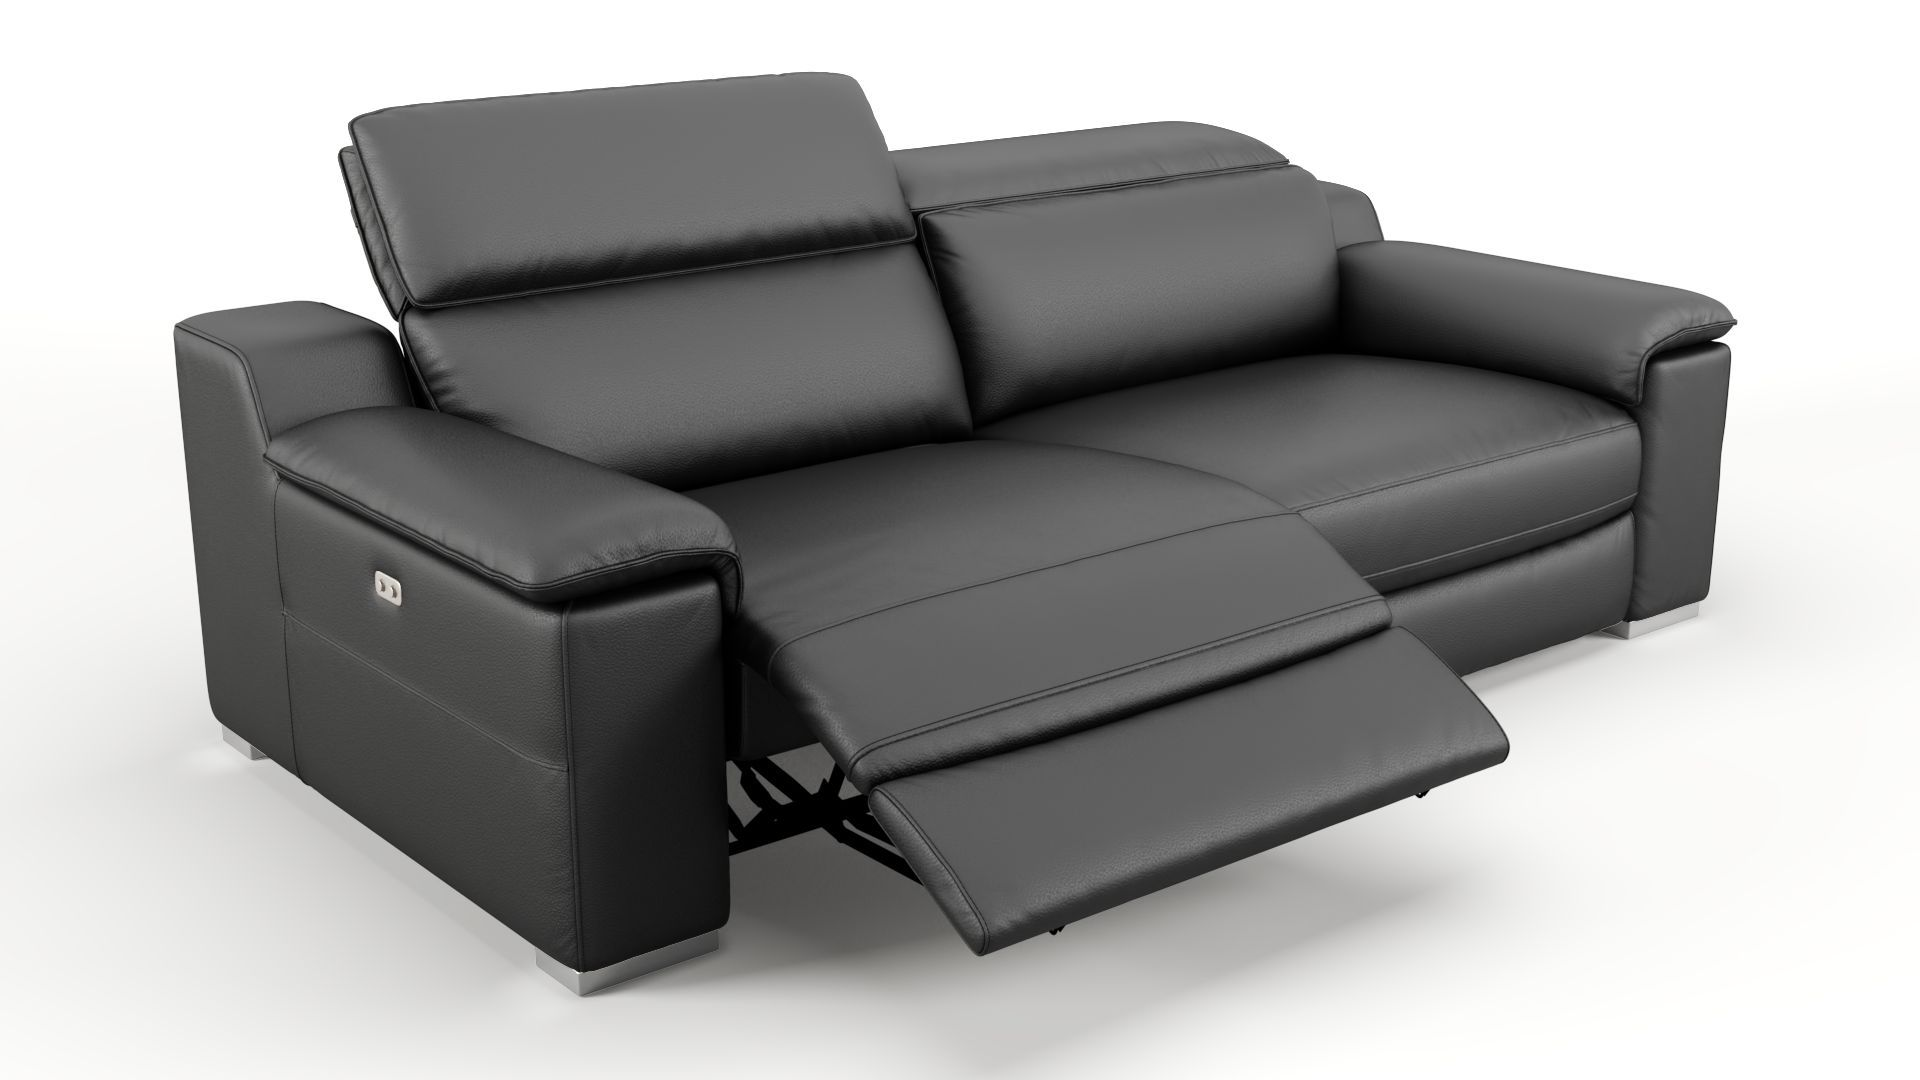 Sofa Mit Relaxfunktion Designer Couch 3 Sitzer Sofa Mit Relaxfunktion Sofanella